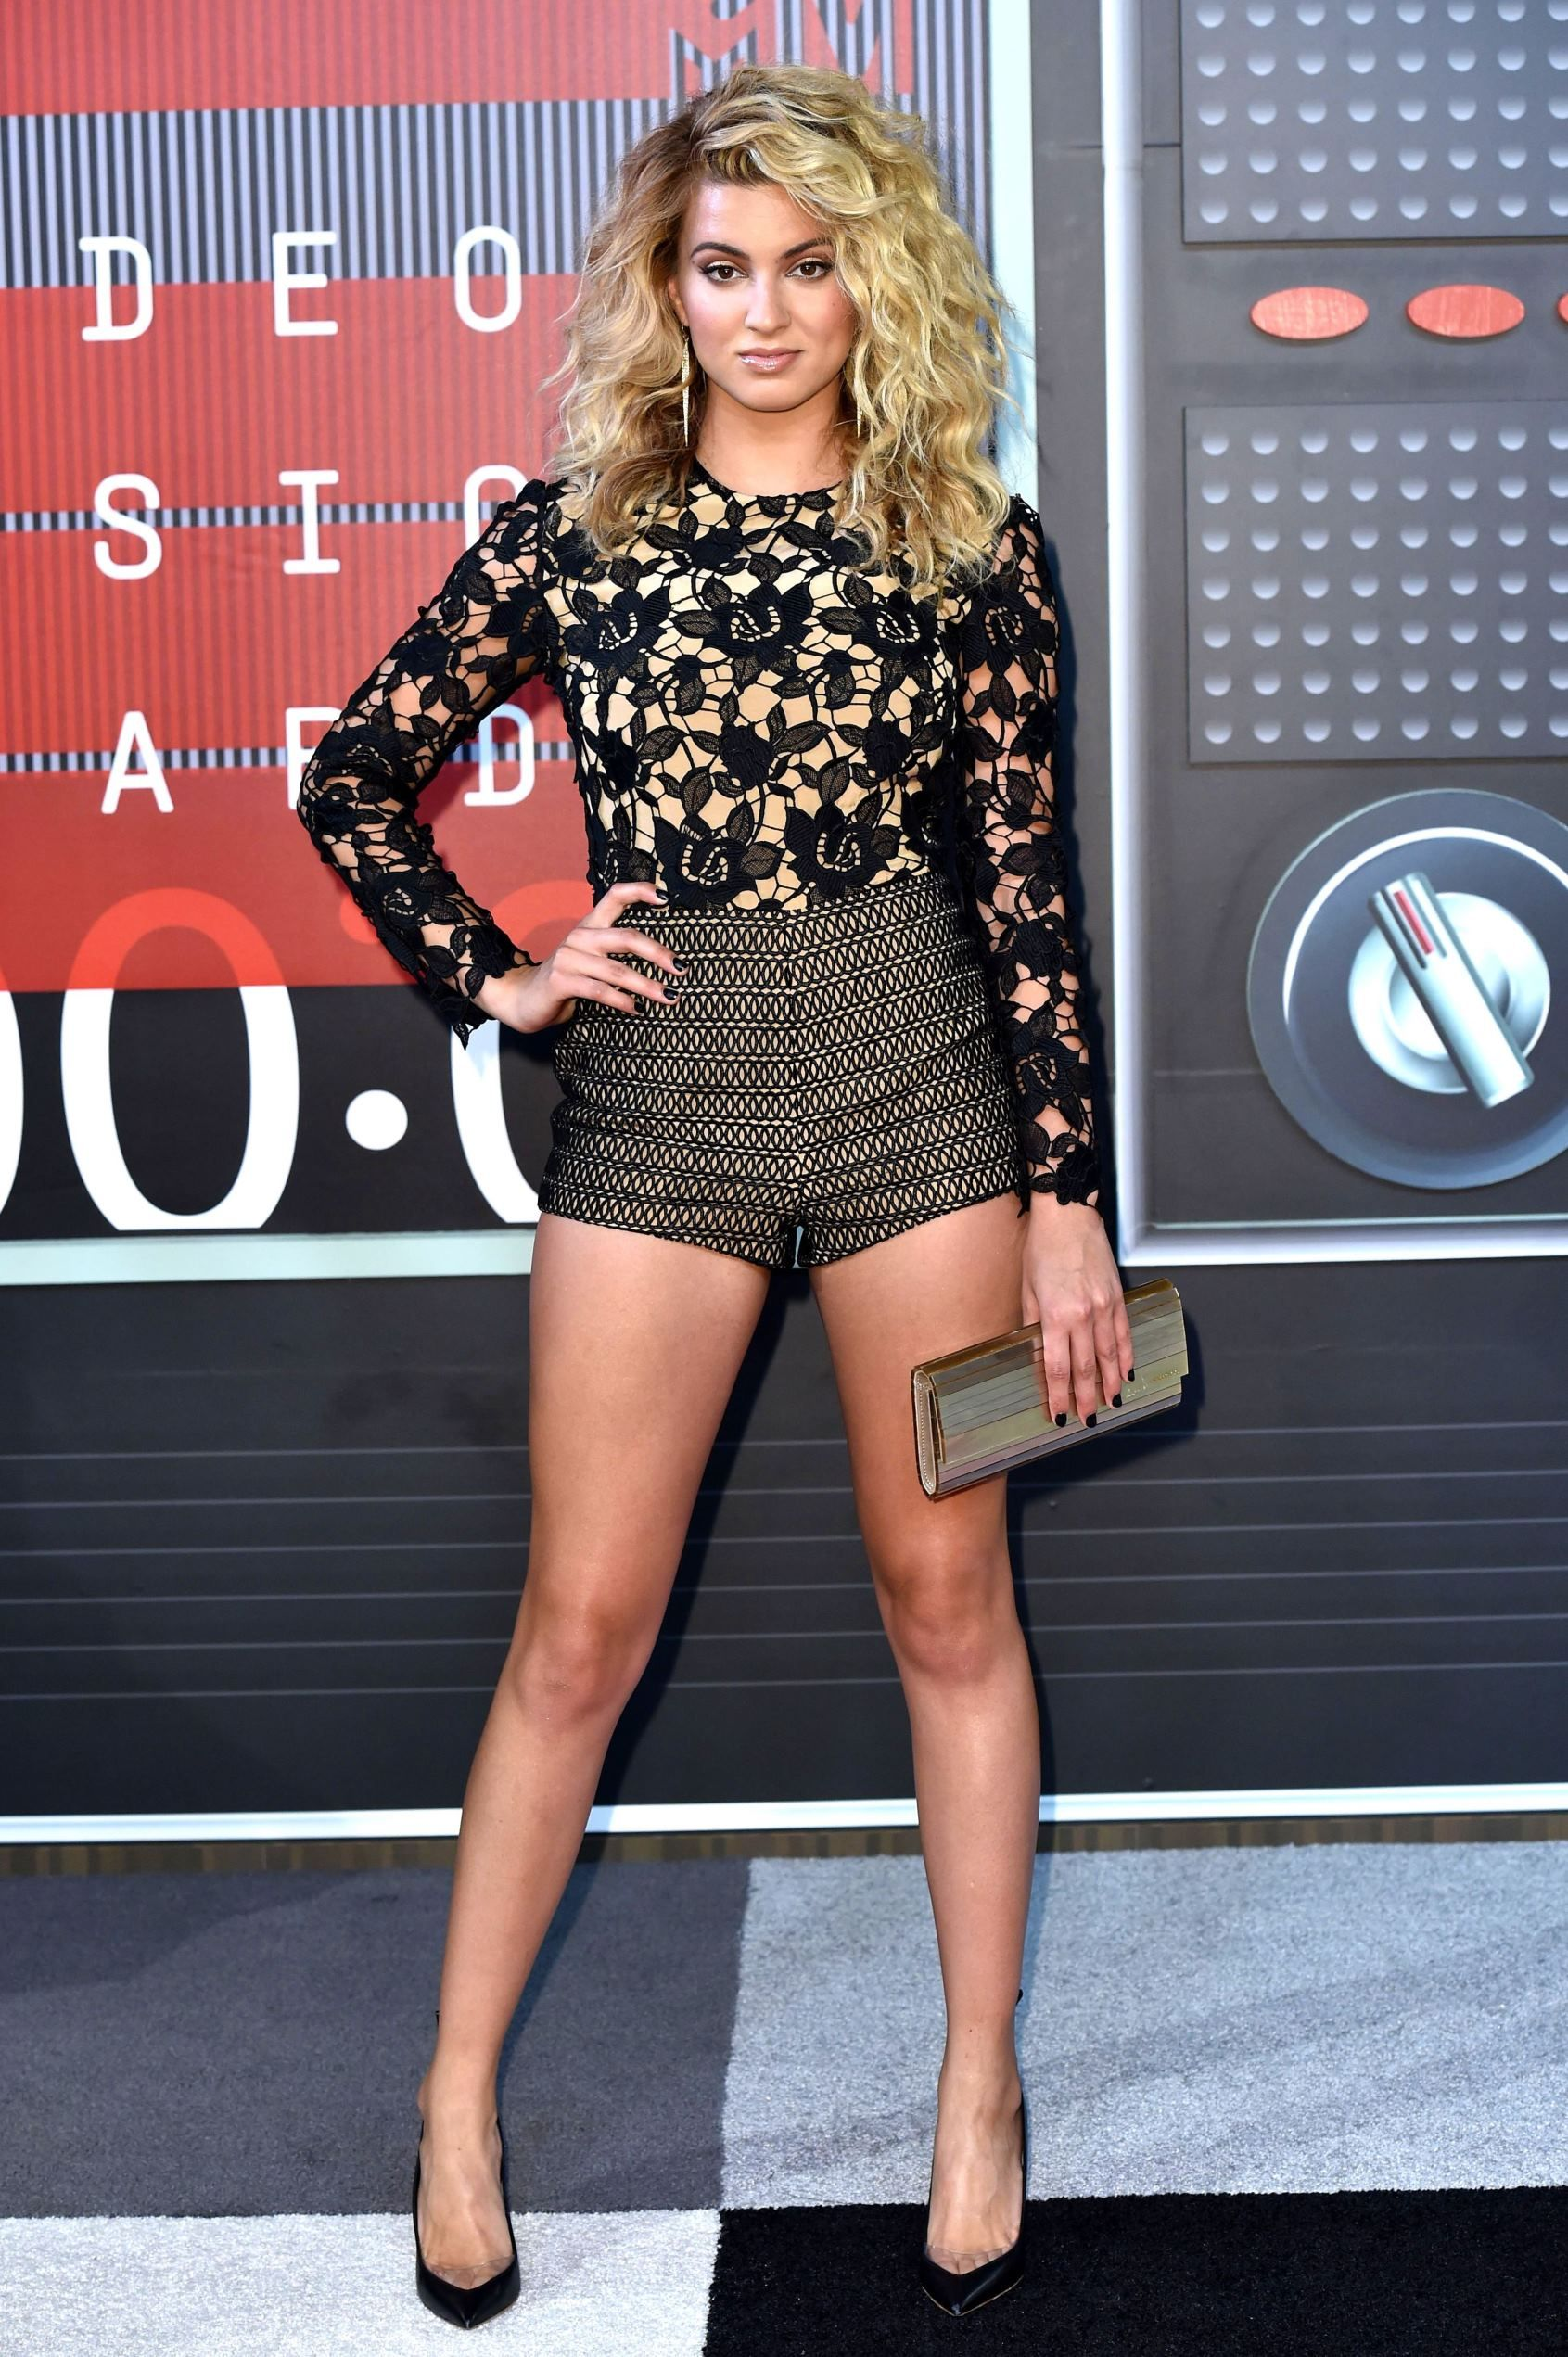 596ca93b8e Check out the gams on Tori Kelly! The